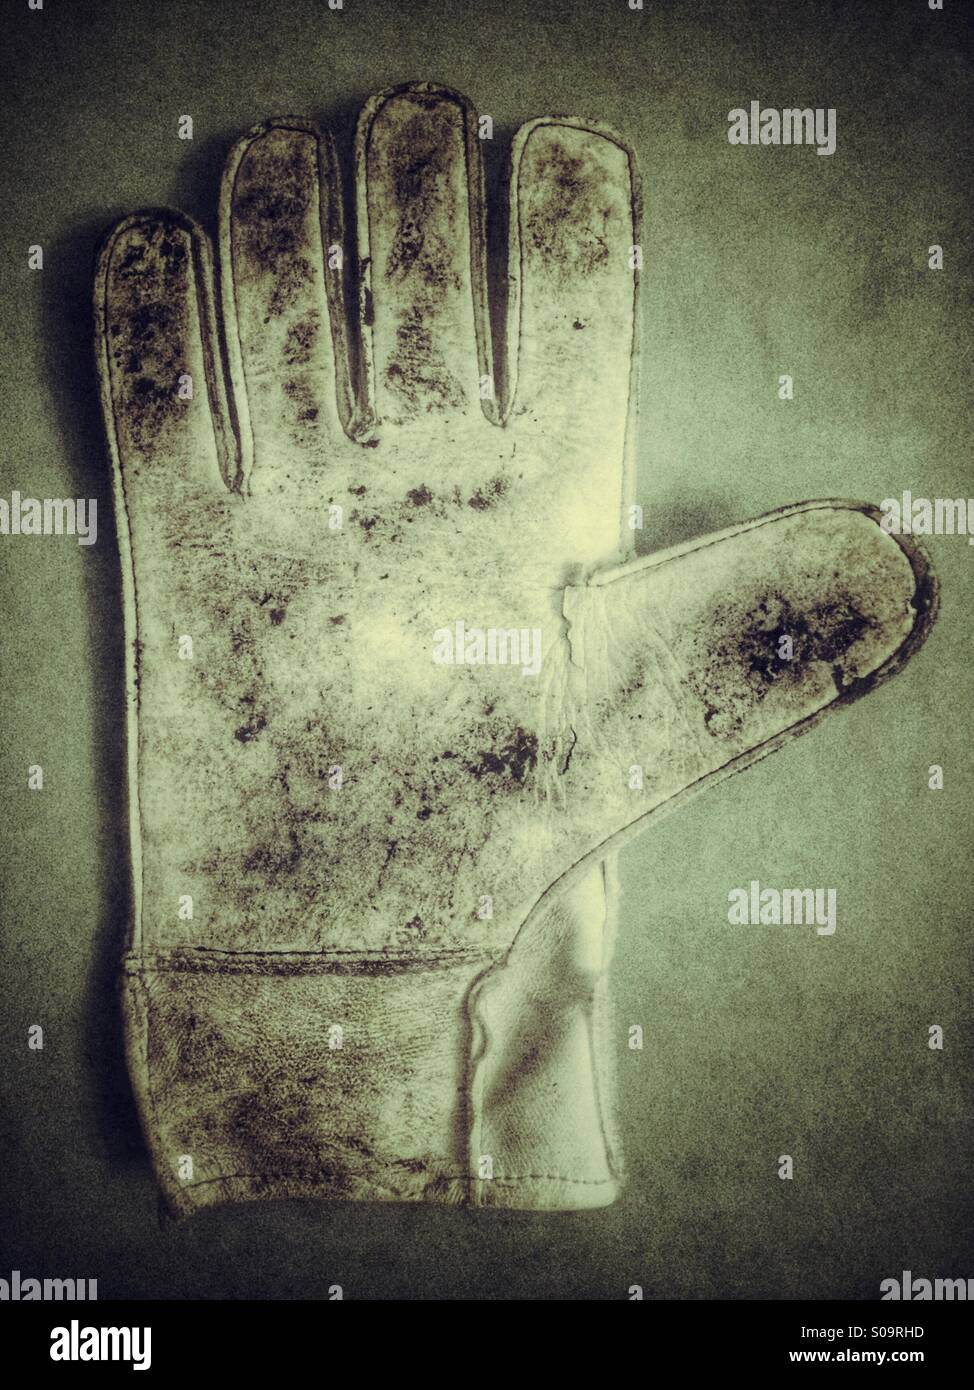 A dirty goalkeepers glove - Stock Image